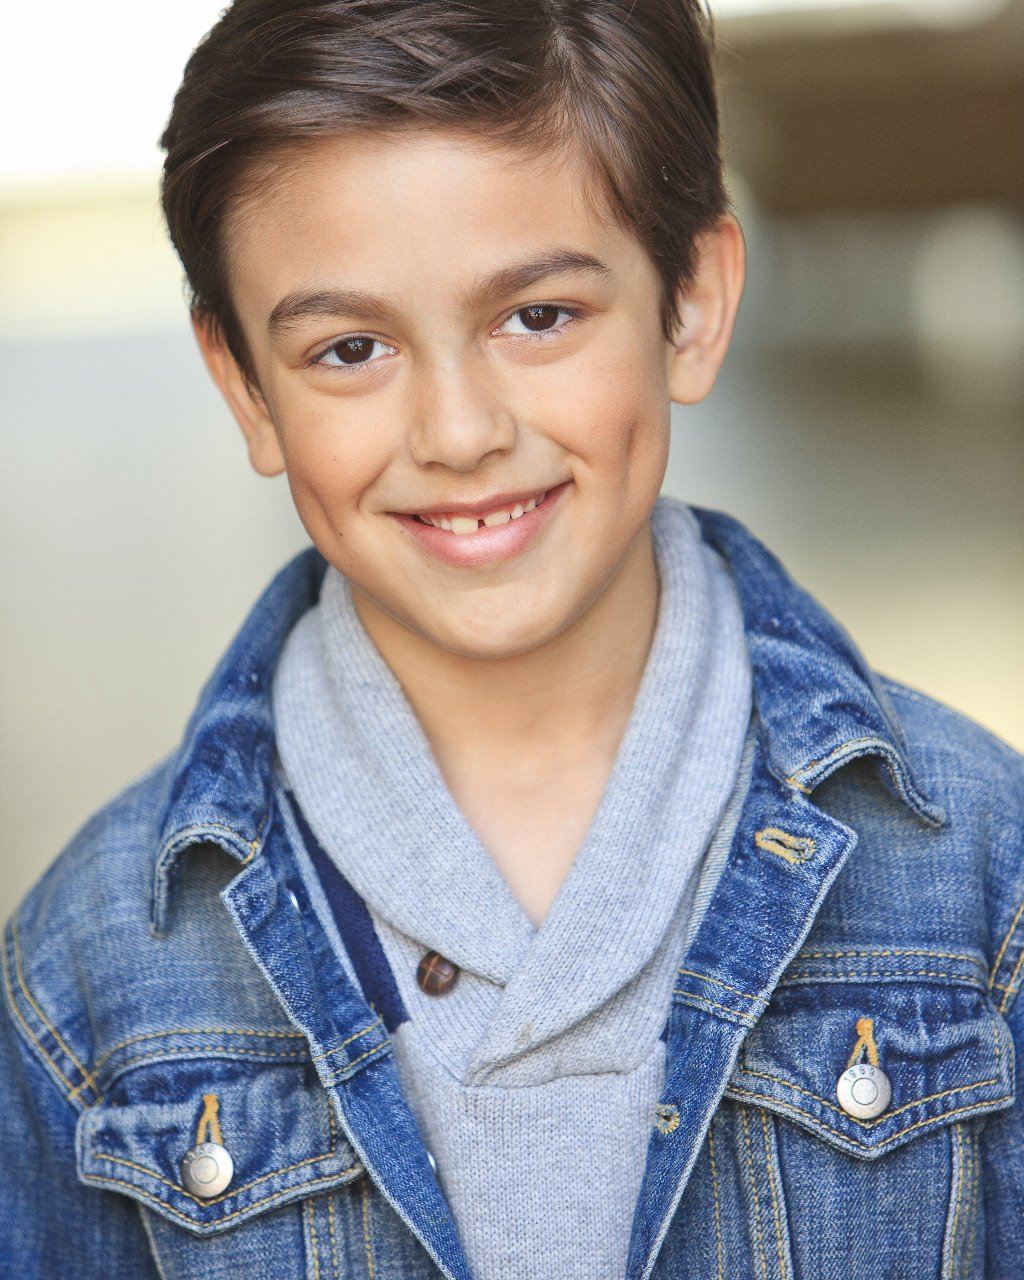 3 2 1 Acting Student Child Actor Lucas Sanson Books Mattel